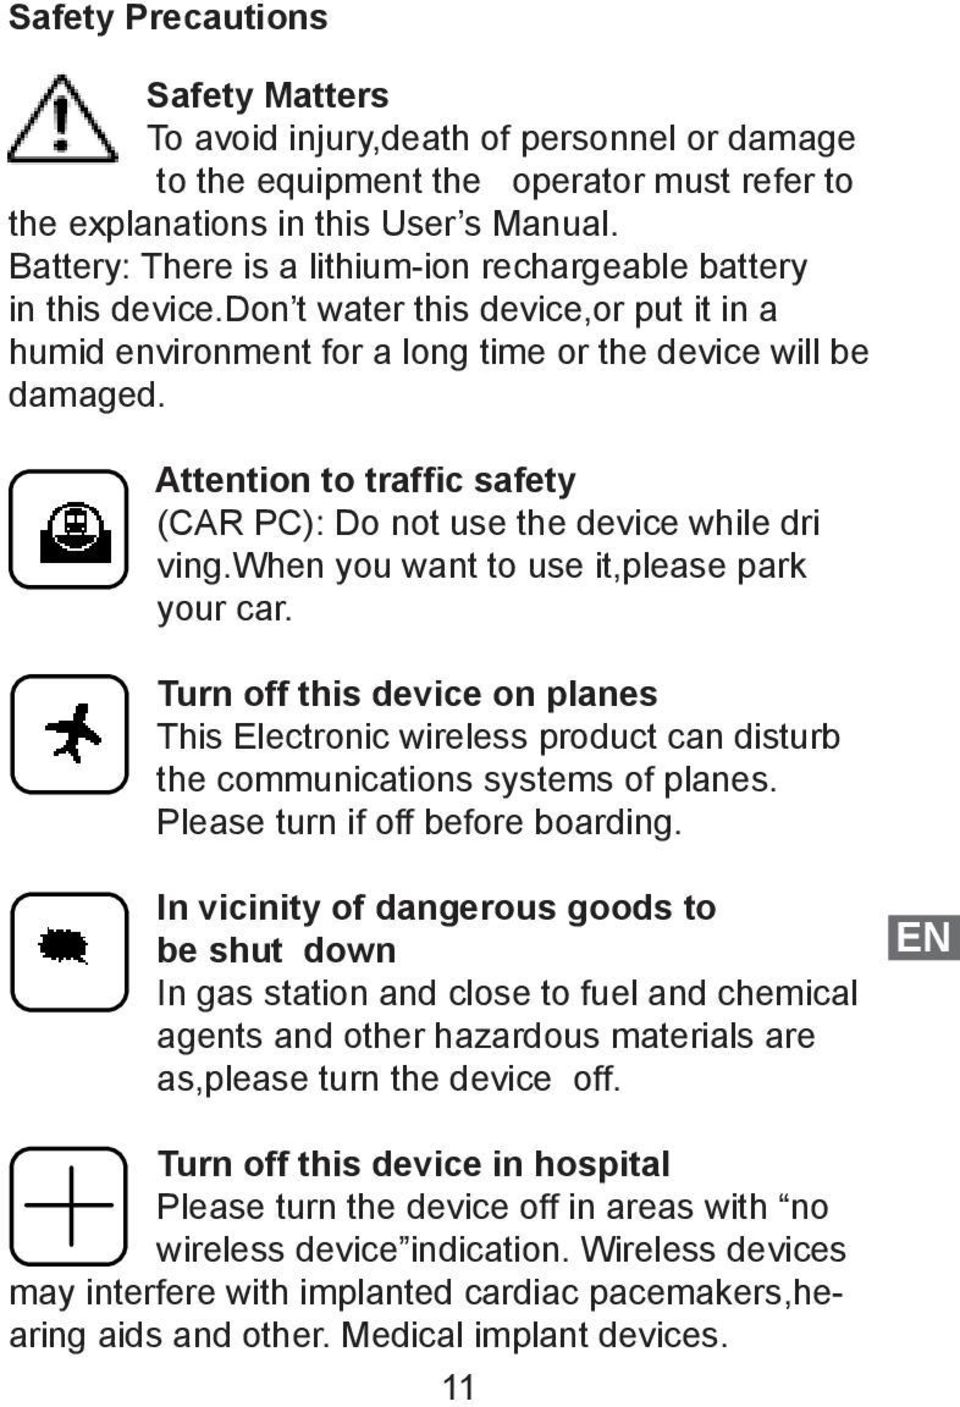 Attention to traffic safety (CAR PC): Do not use the device while dri ving.when you want to use it,please park your car.